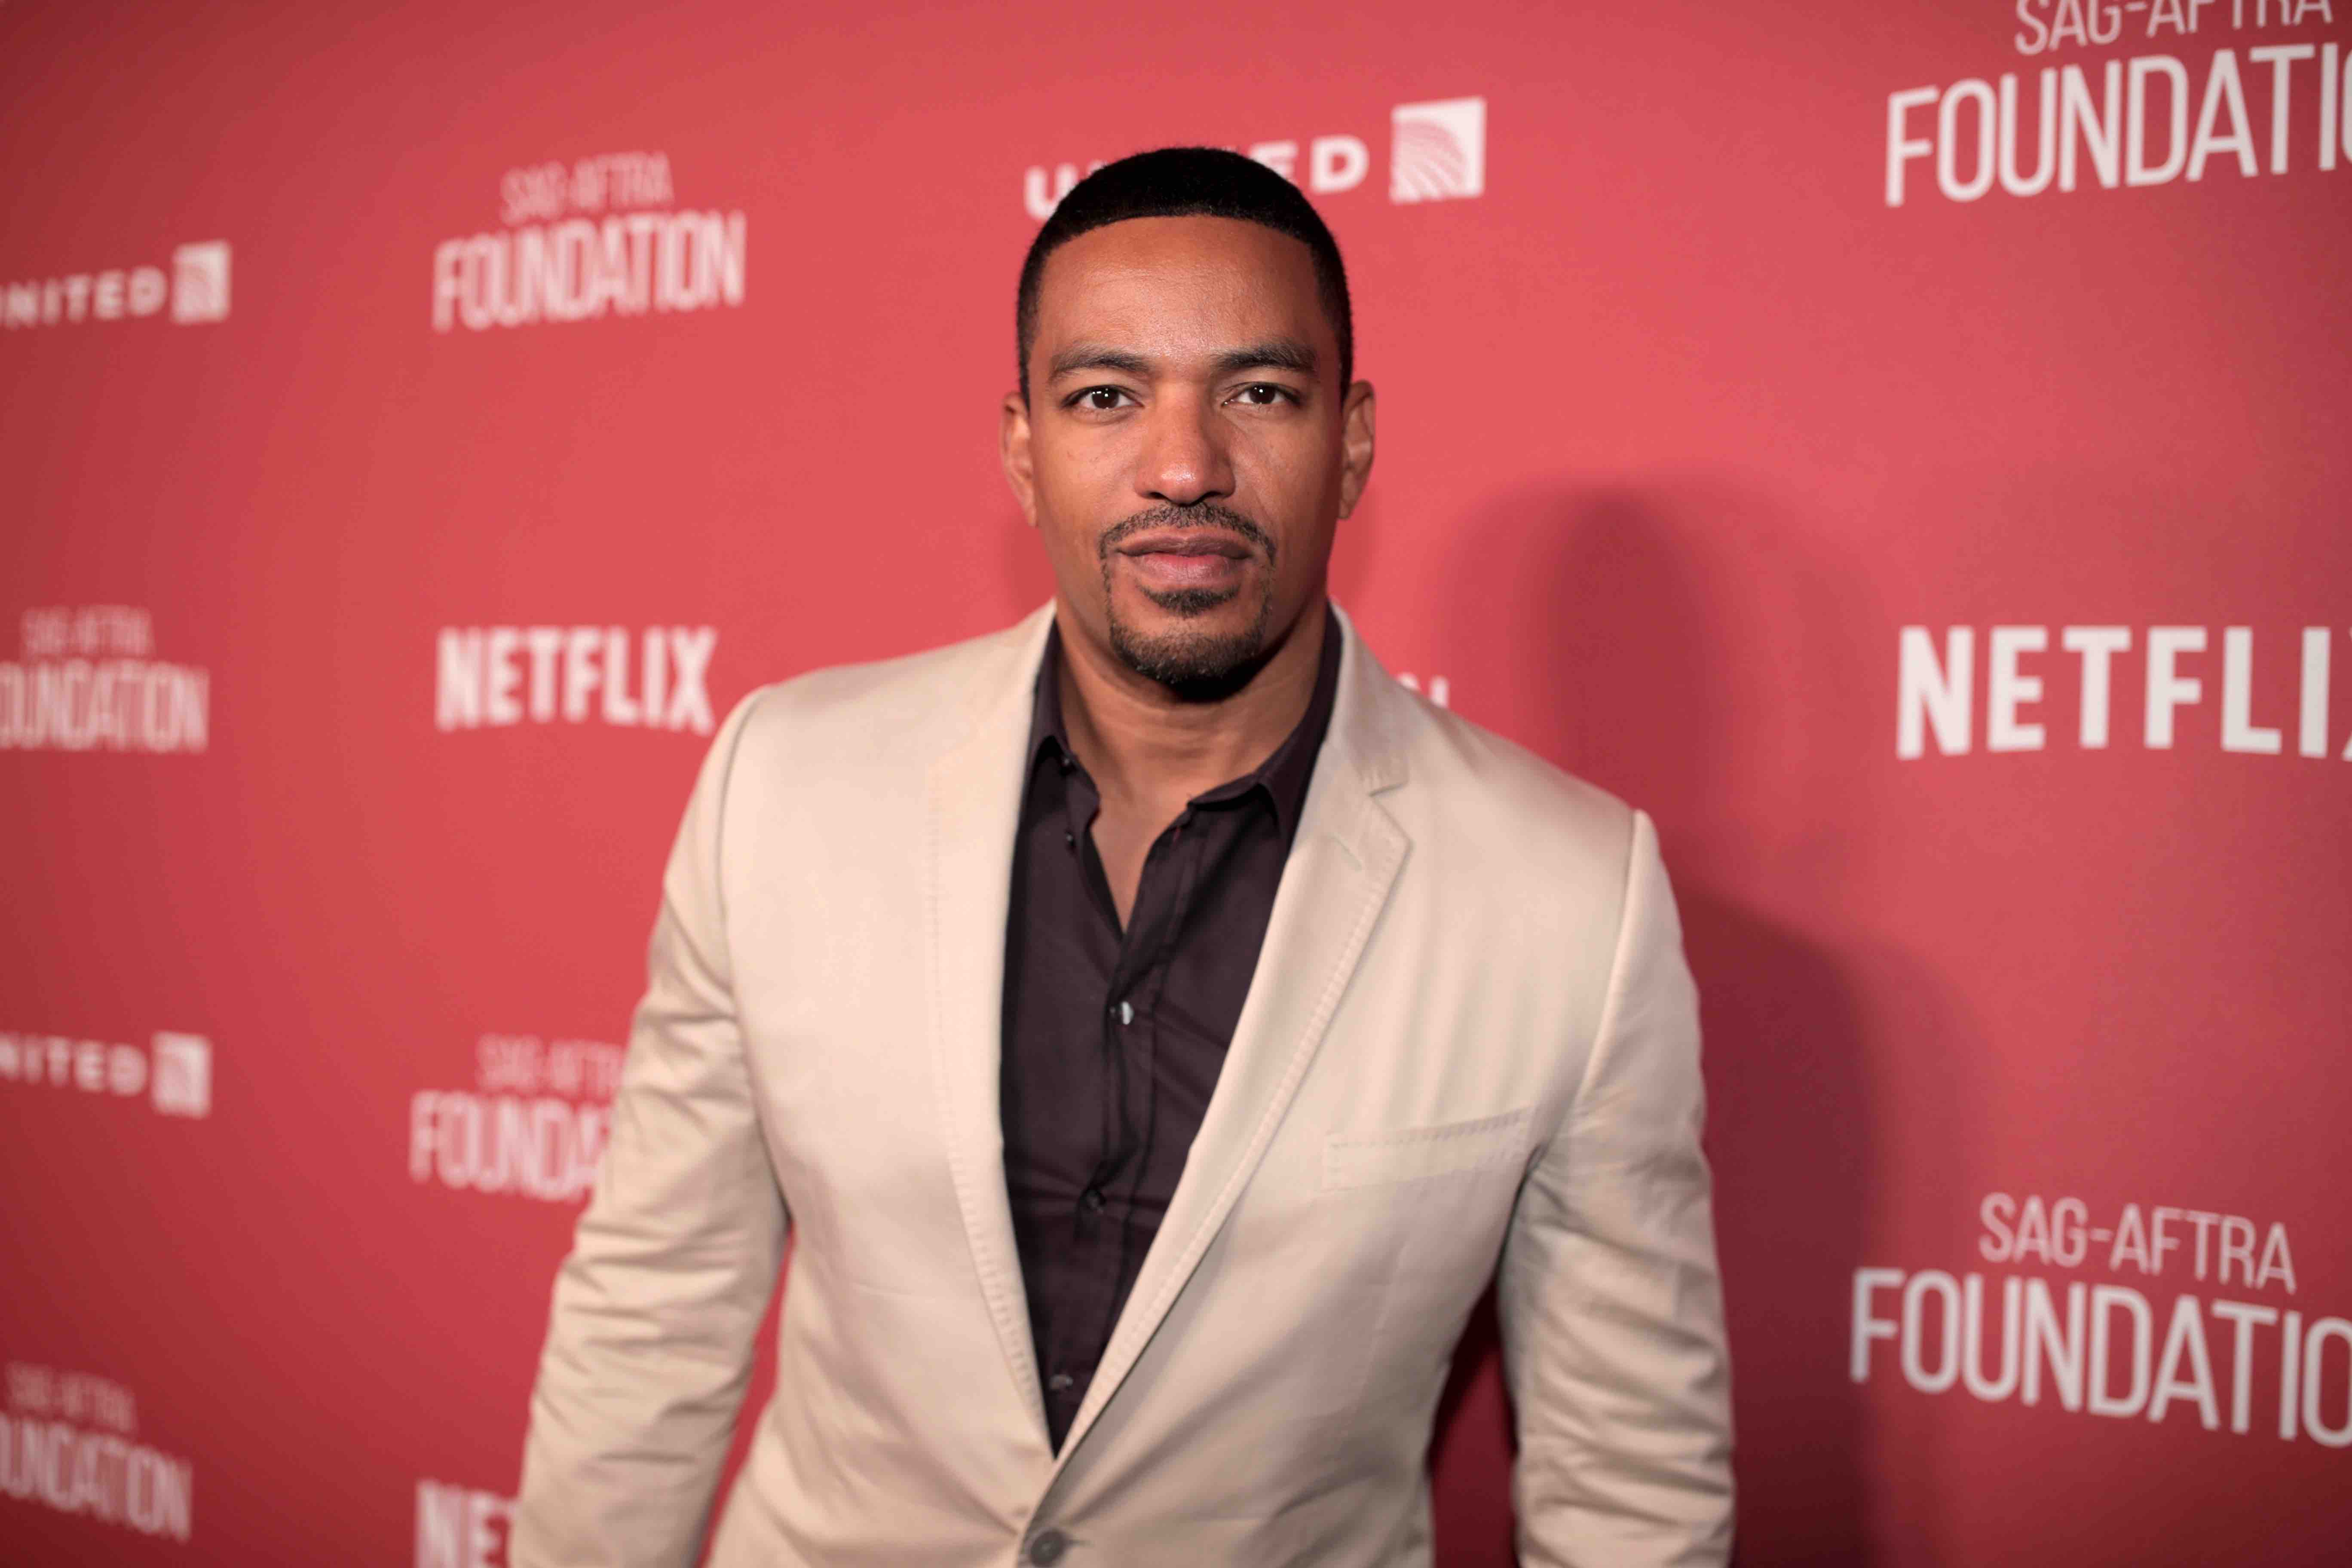 This Throwback Clip of Cuban-American Actor Laz Alonso Explaining Afro-Latindad Is a Lesson For All